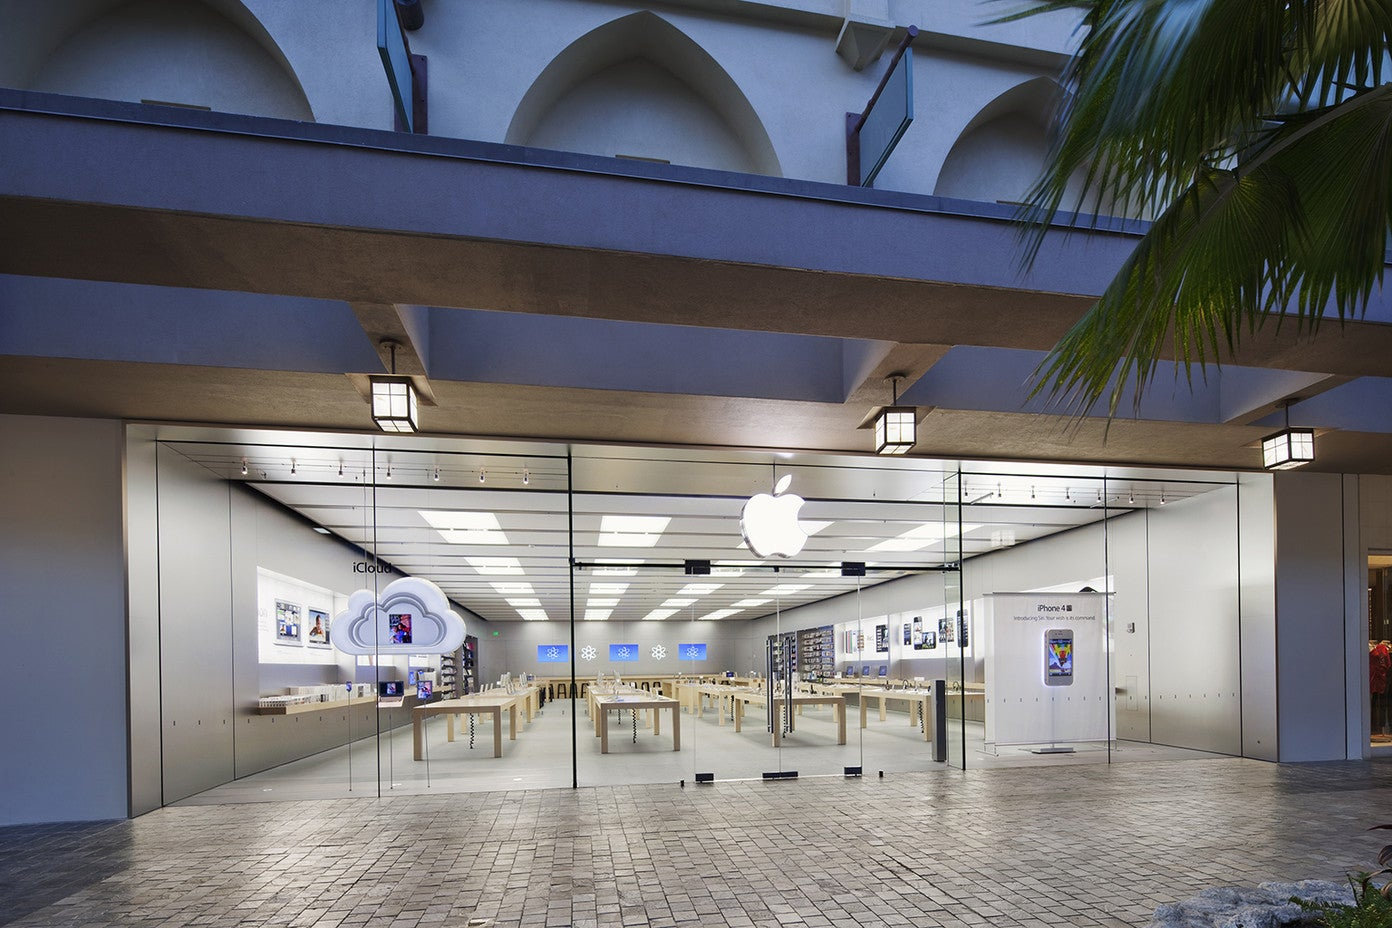 Apple Store retail location as seen from outside, with glass windows showing inside and palm tree next to entrance.